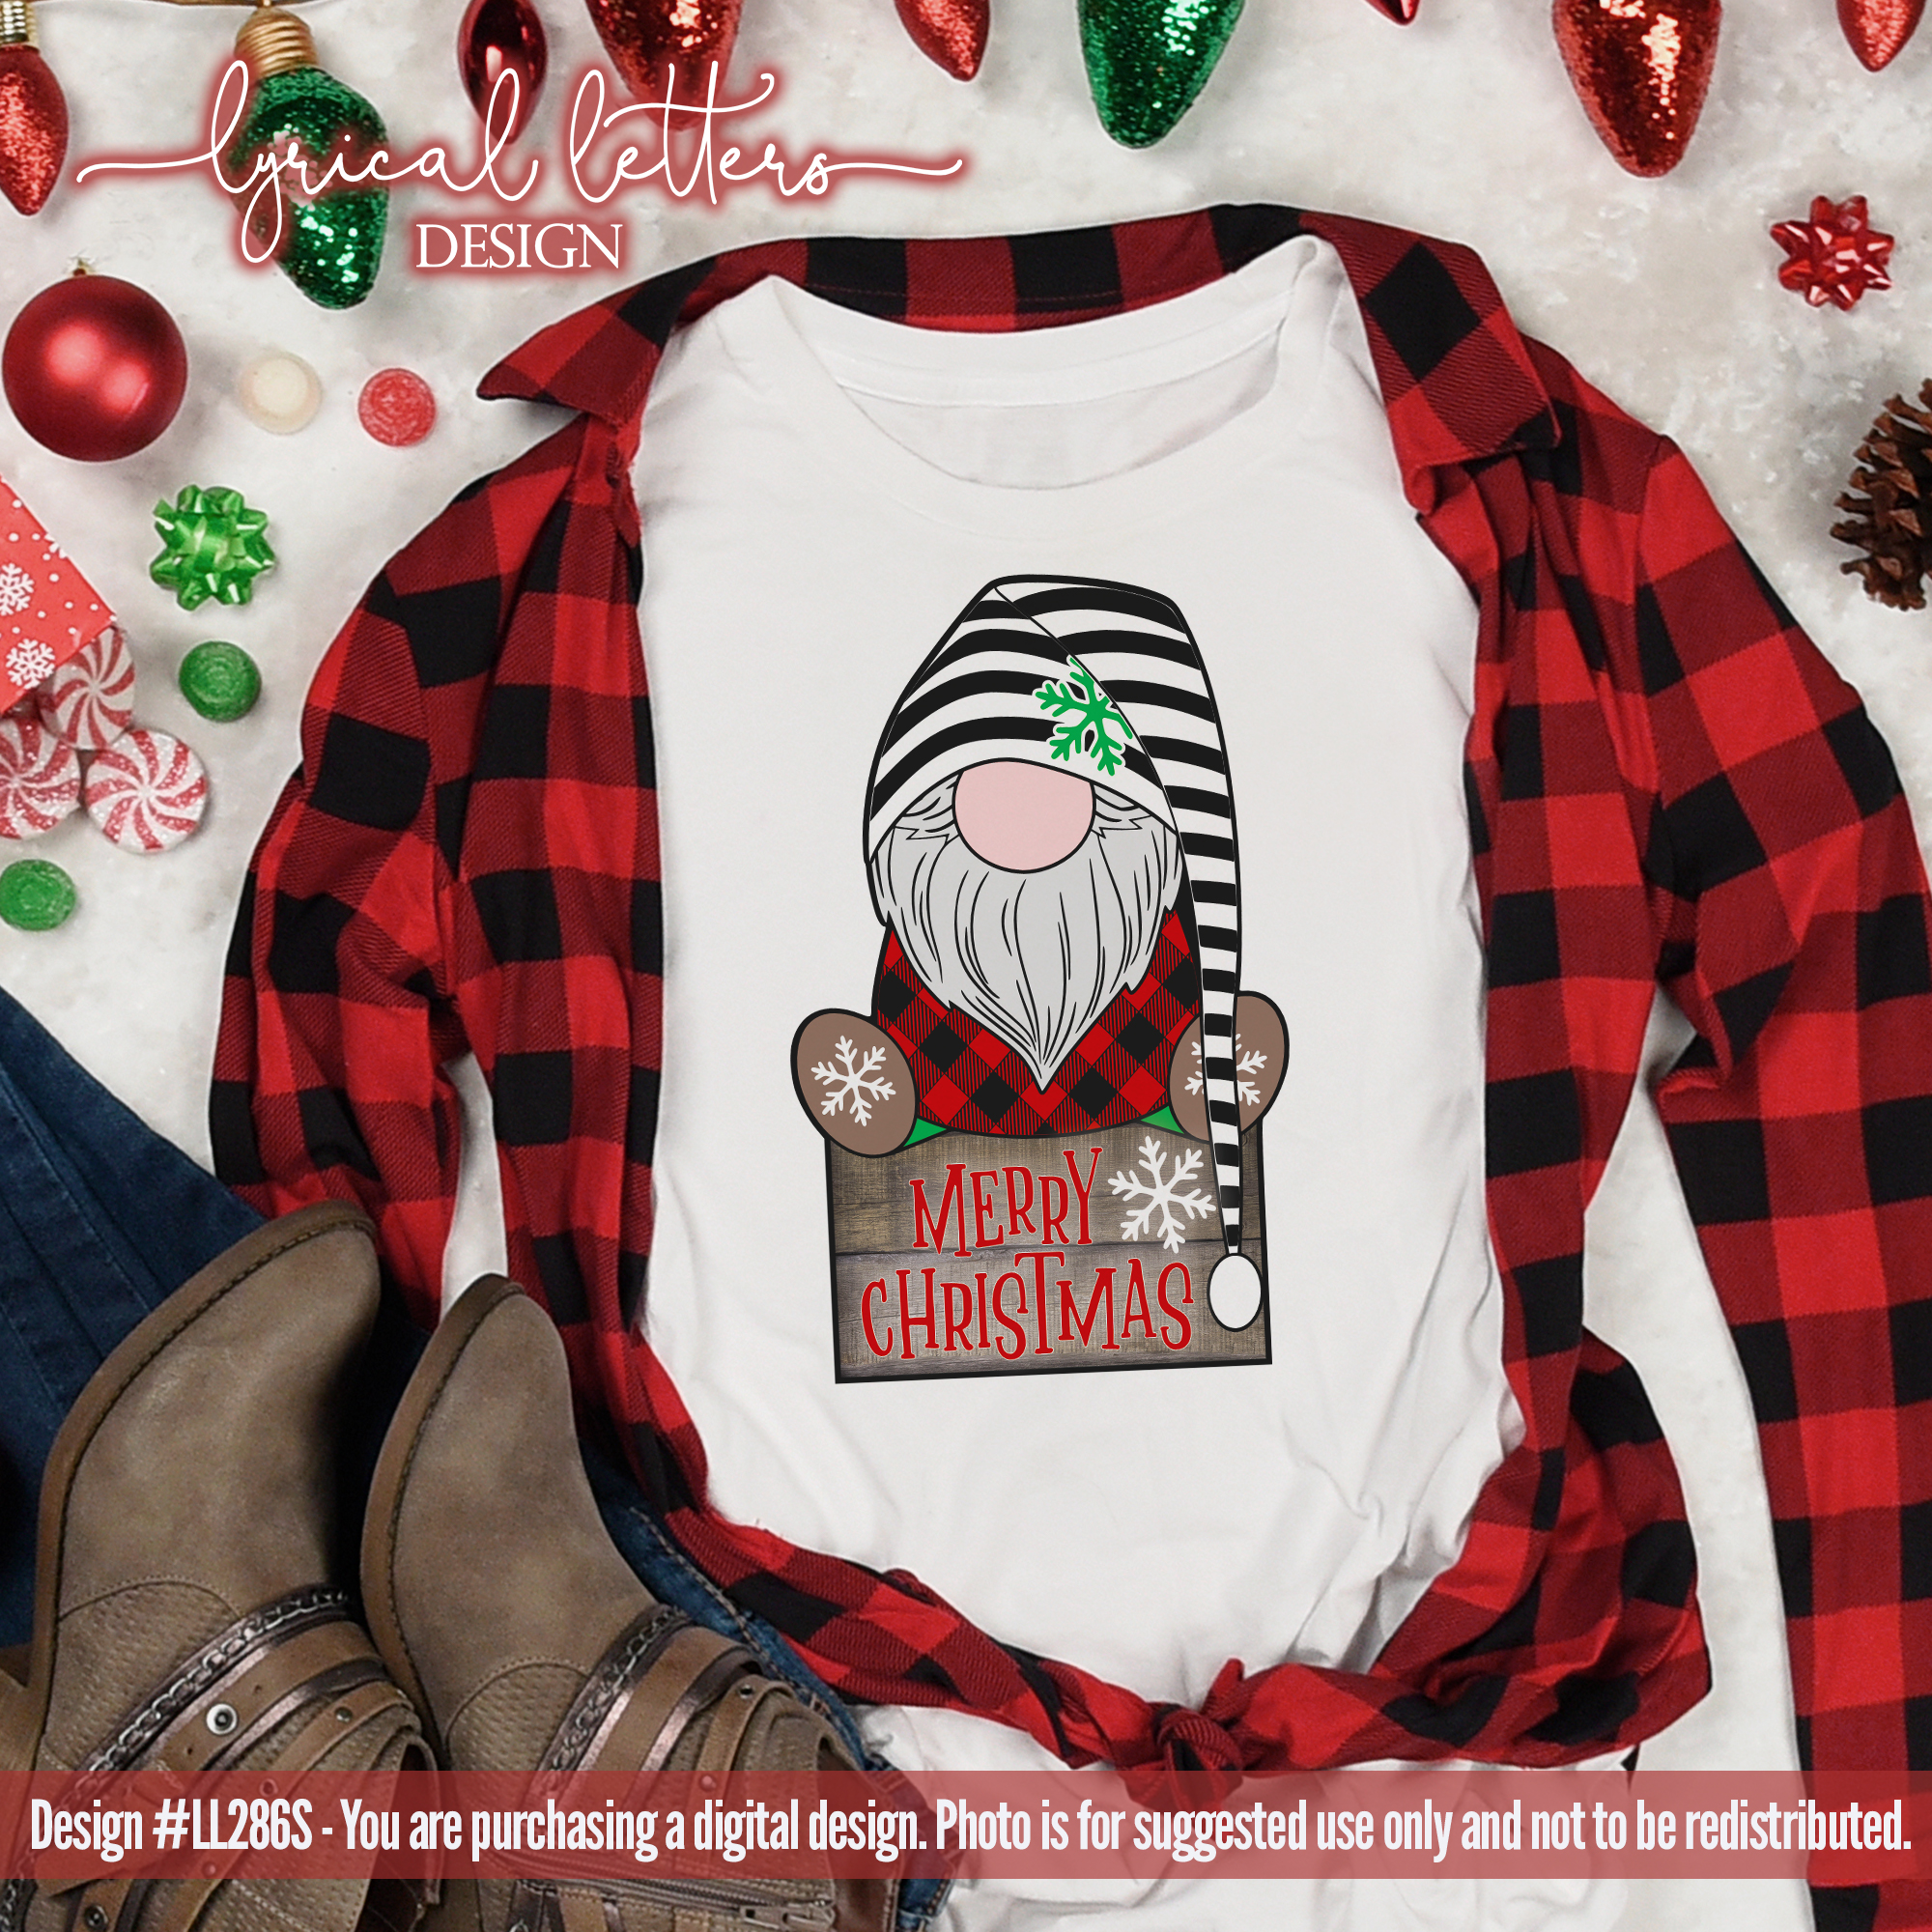 NEW! Merry Christmas Gnome SUBLIMATION Printable PNG LL286 example image 3